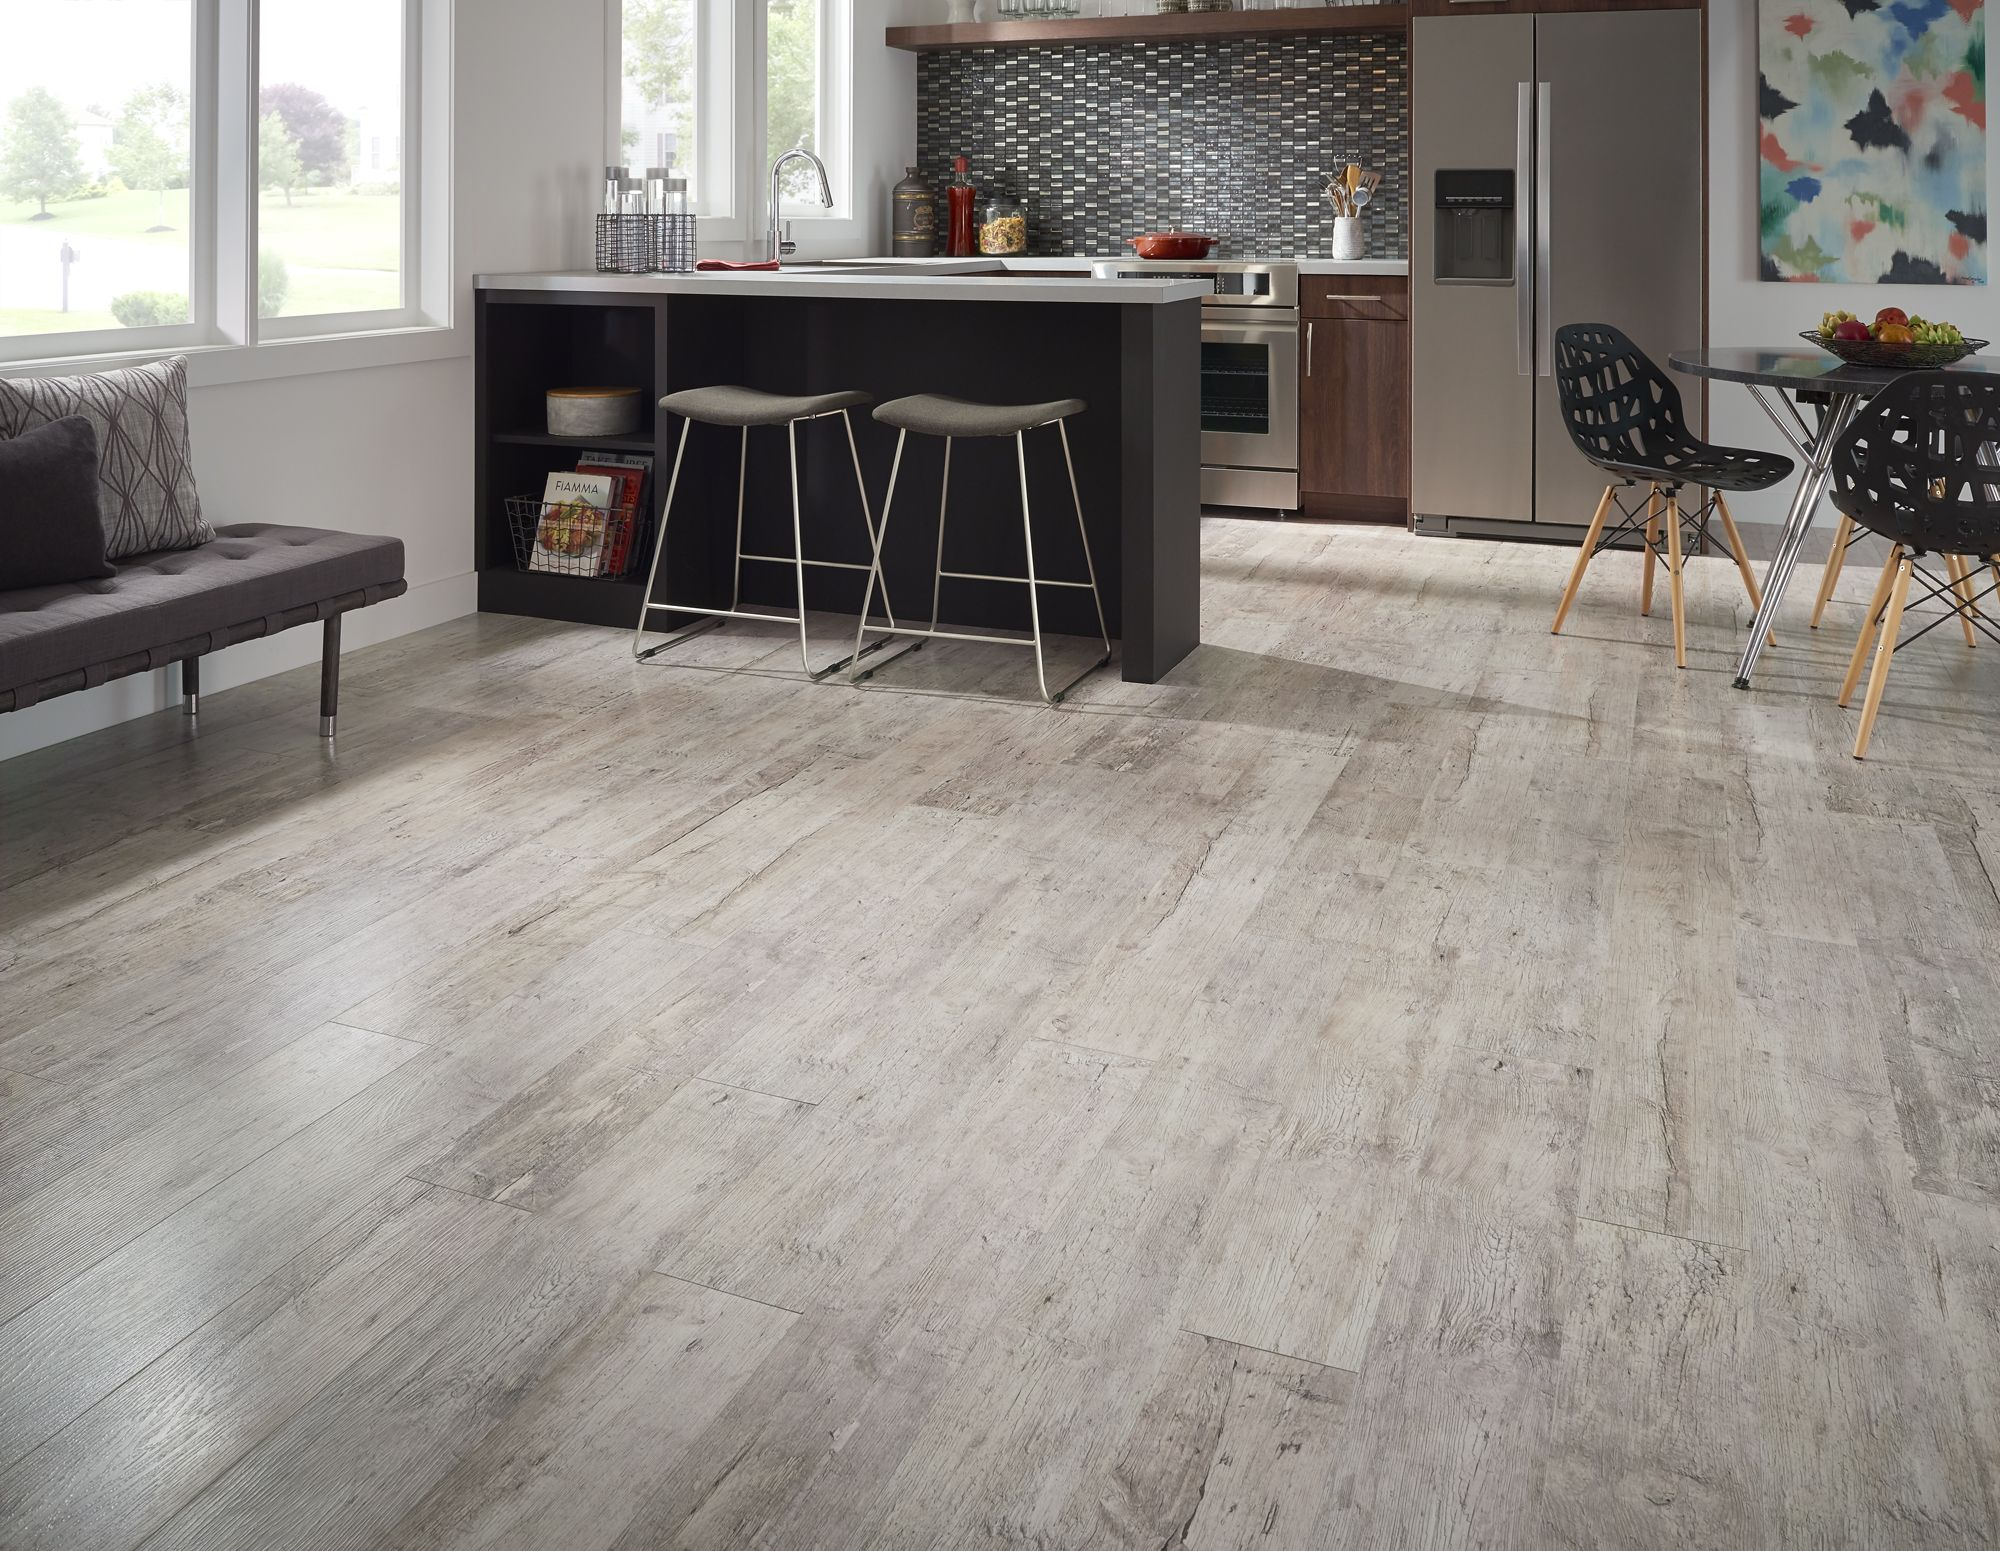 New Click Ceramic Plank Ccp Is Ideal For Any Room In